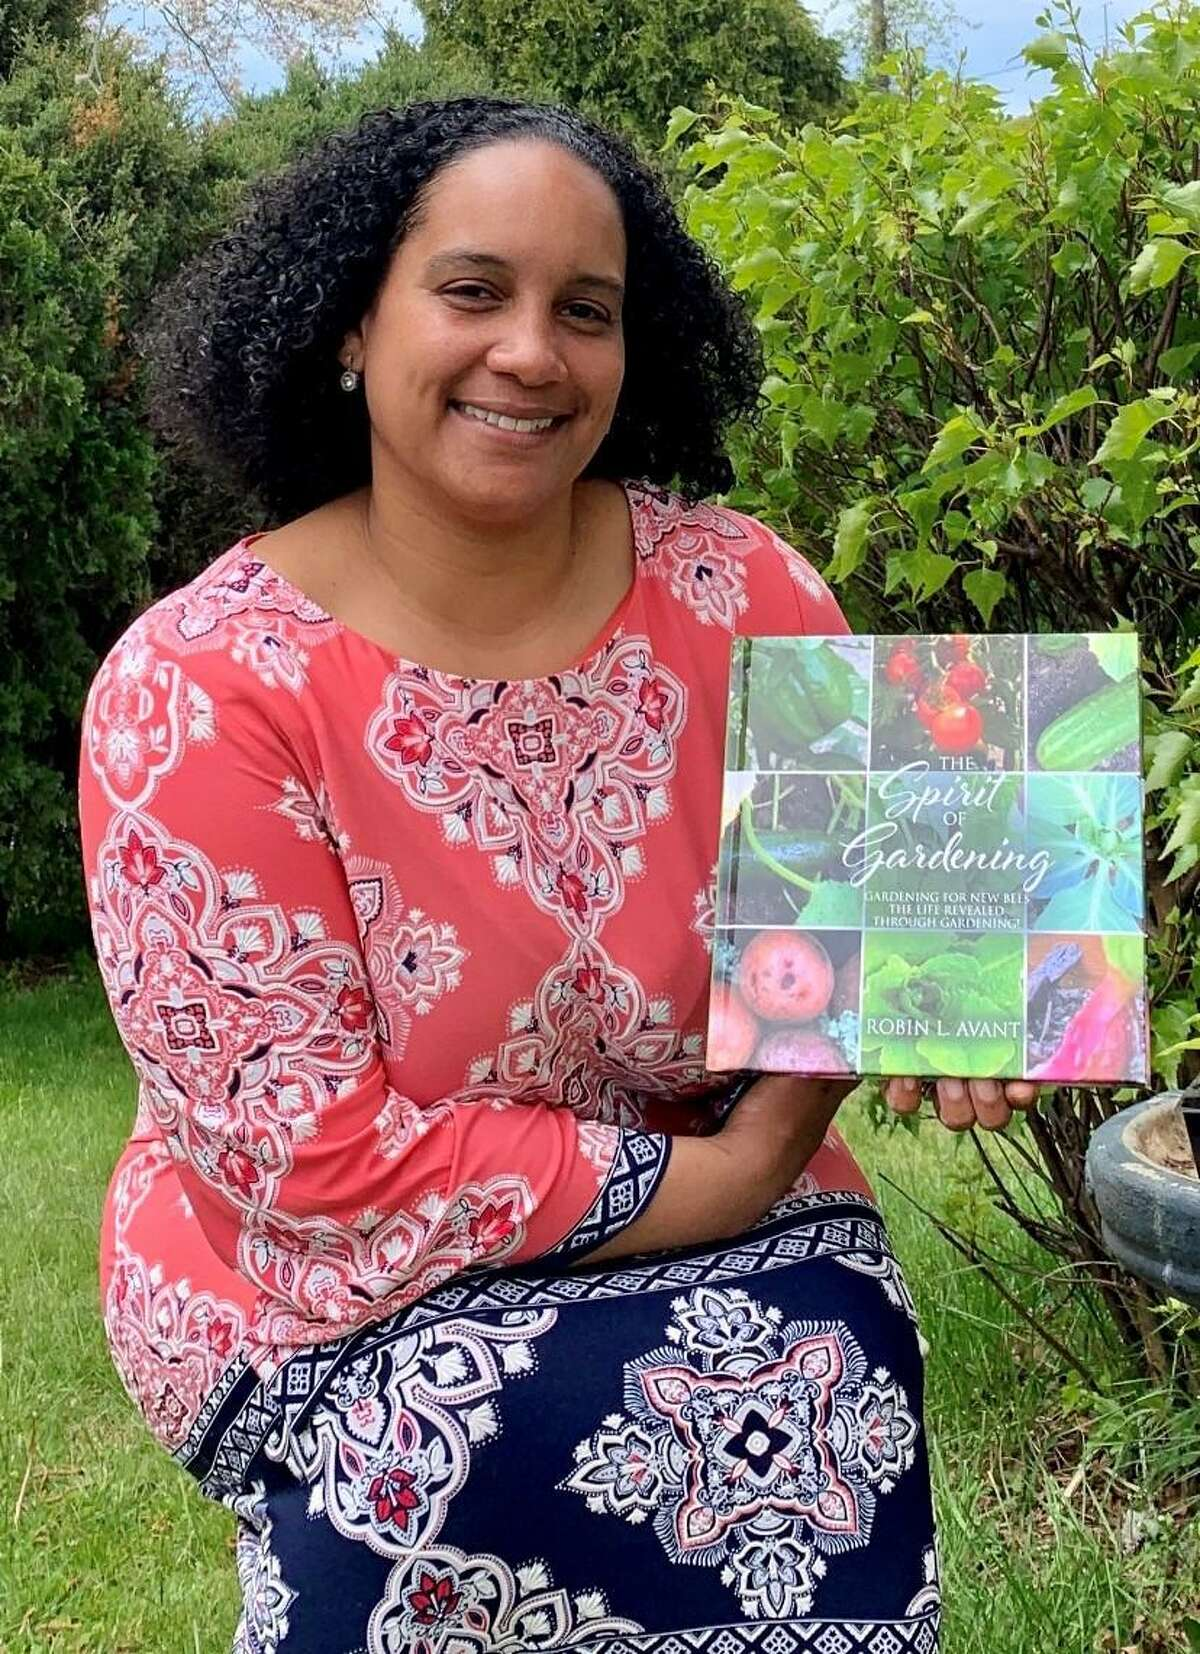 As many people turn to gardening as a way to occupy themselves during quarantine, HCC Dean of Academic Affairs Robin L. Avant has published a book about how to get started on the process.